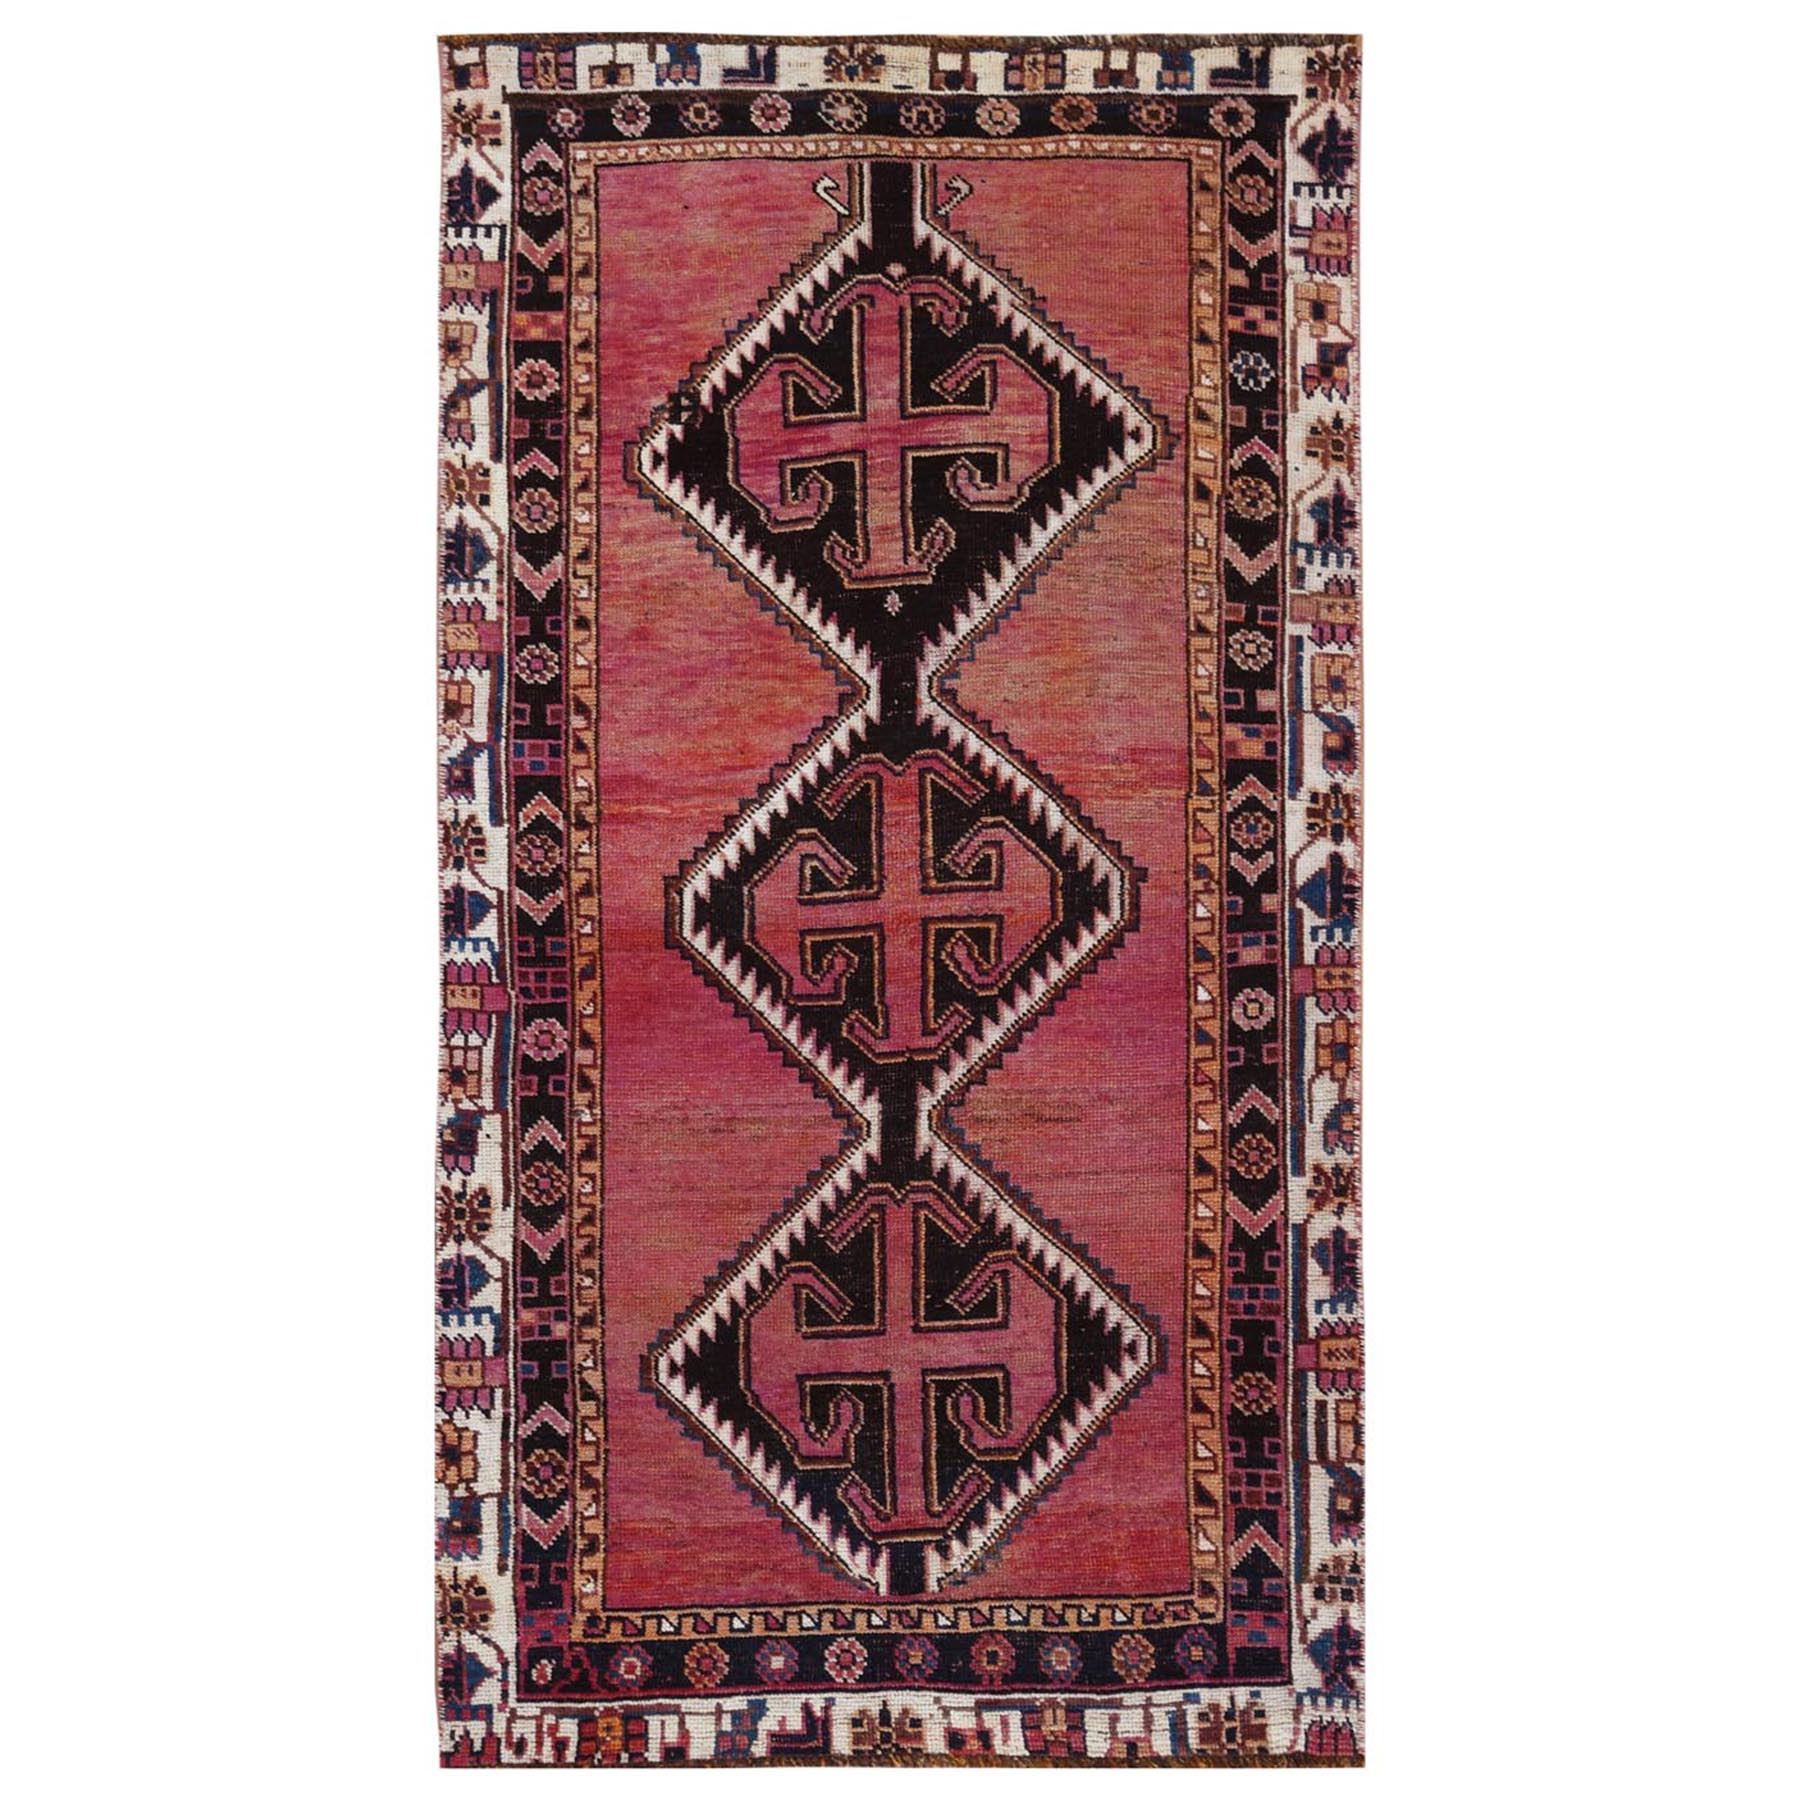 Fetneh Collection And Vintage Overdyed Collection Hand Knotted Red Rug No: 1115880